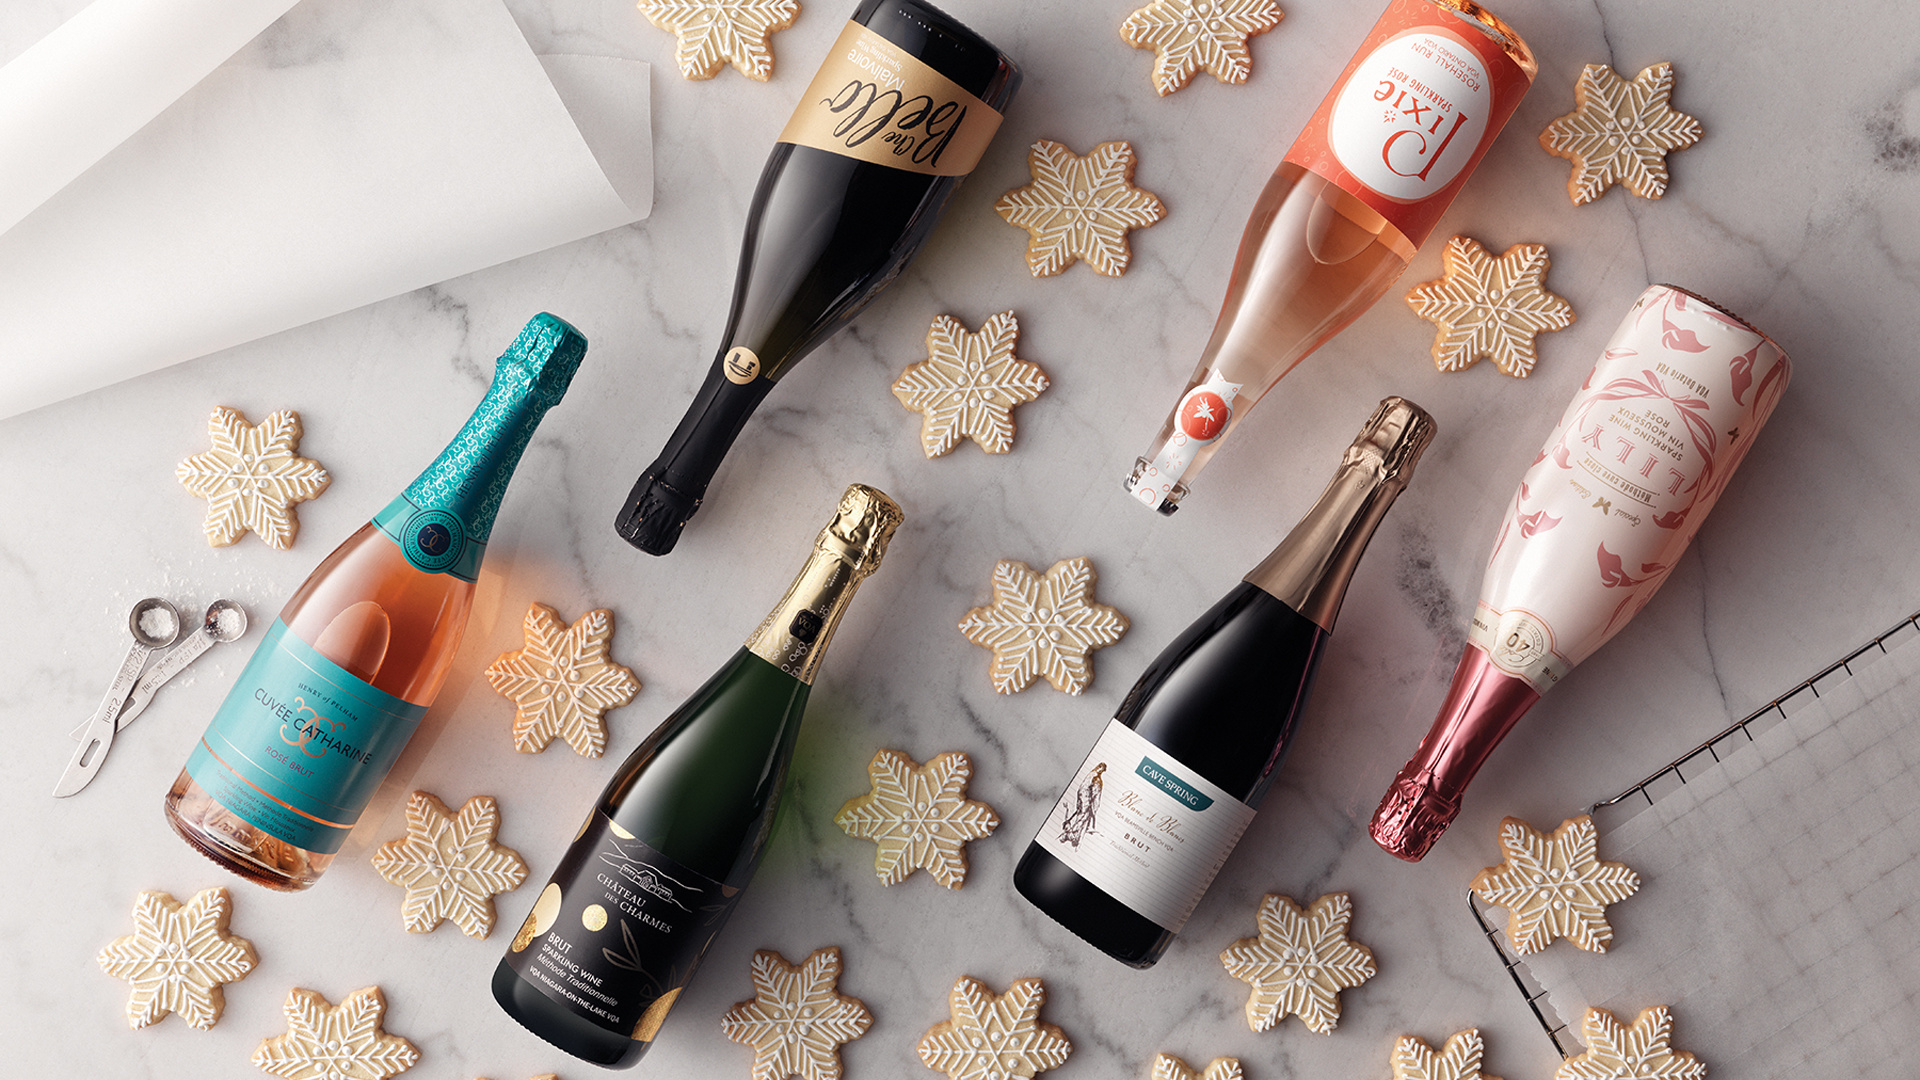 Ontario sparkling wines | Our fave local fizz